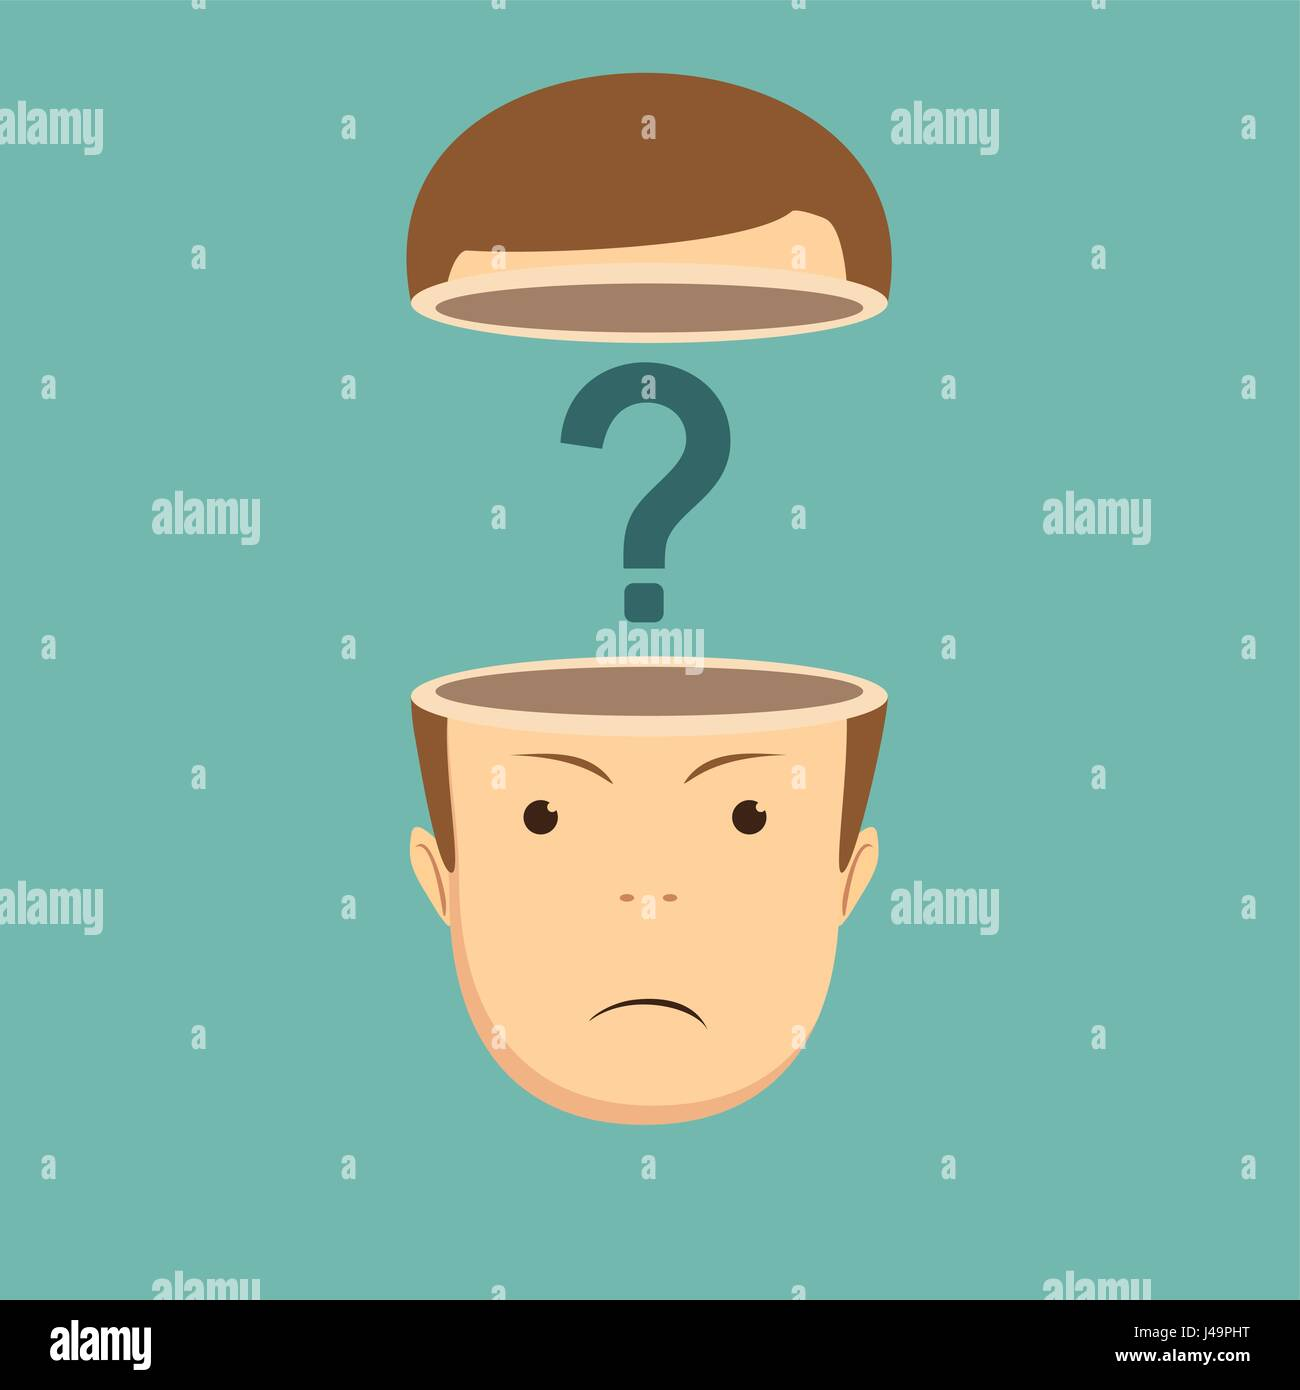 human head open with question mark - Stock Image